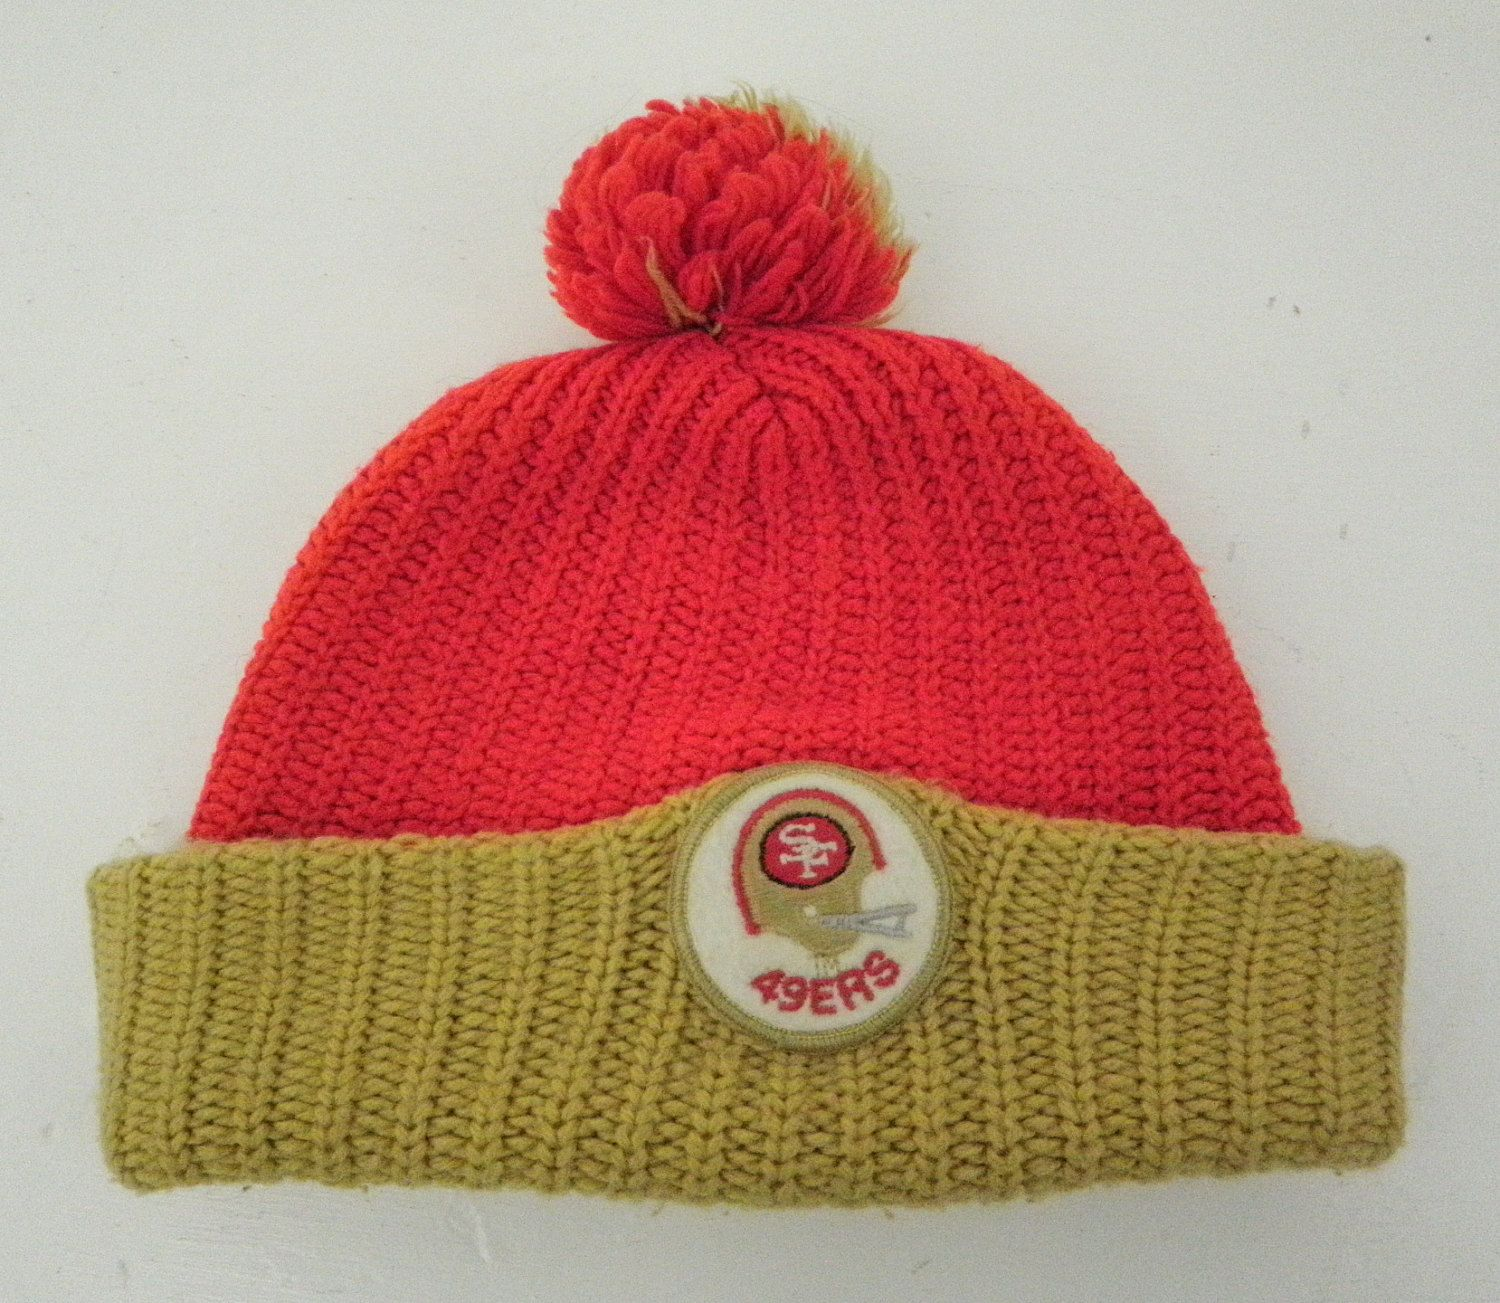 6c982ec44c6 San Francisco 49ers Pom Pom Ski Hat Beanie Patch Vintage Knit Winter Cap by  TraSheeWomen on Etsy  sanfrancisco  49ers  niners  football  vintage  hat  ...